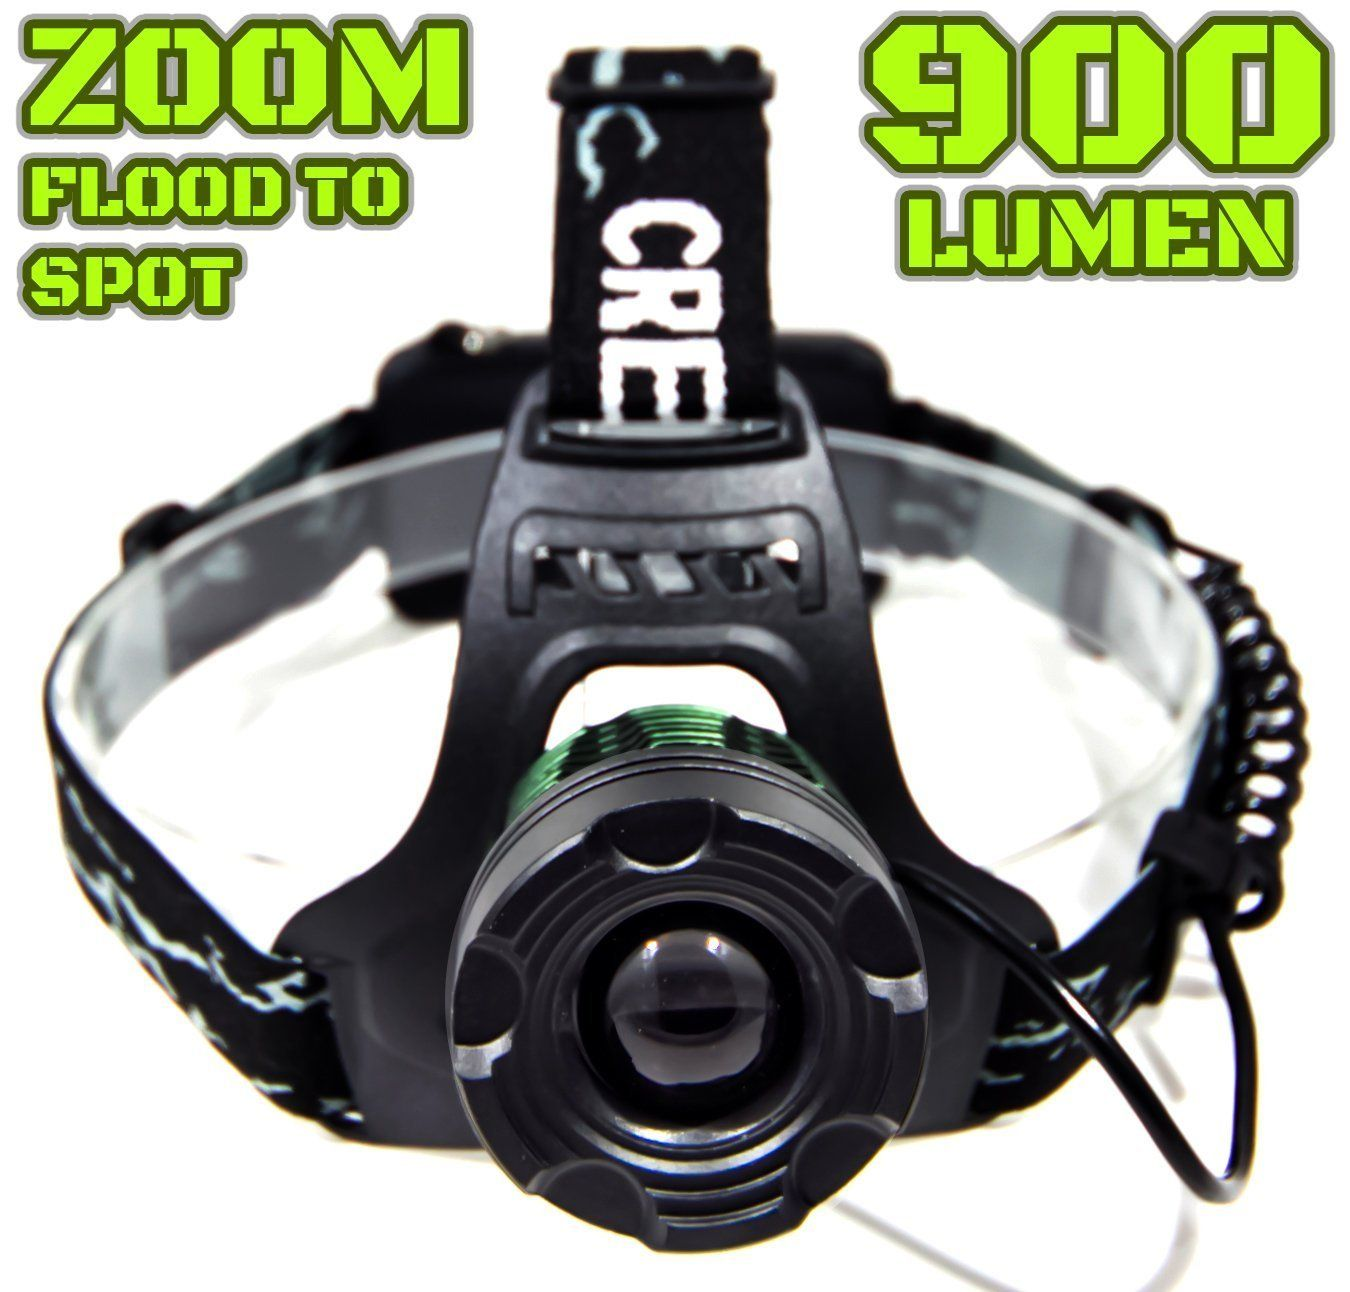 900 LUMEN Head Lamp   Water Proof   RECHARGEABLE   ZOOMABLE Floodlight to Spotlight   X-Lamp XM-L2 CREE LED (20% Brighter Than T6 LED)   BATTERIES NOT INCLUDED (BLK ZOOM) * Startling review available here  : Camping gear